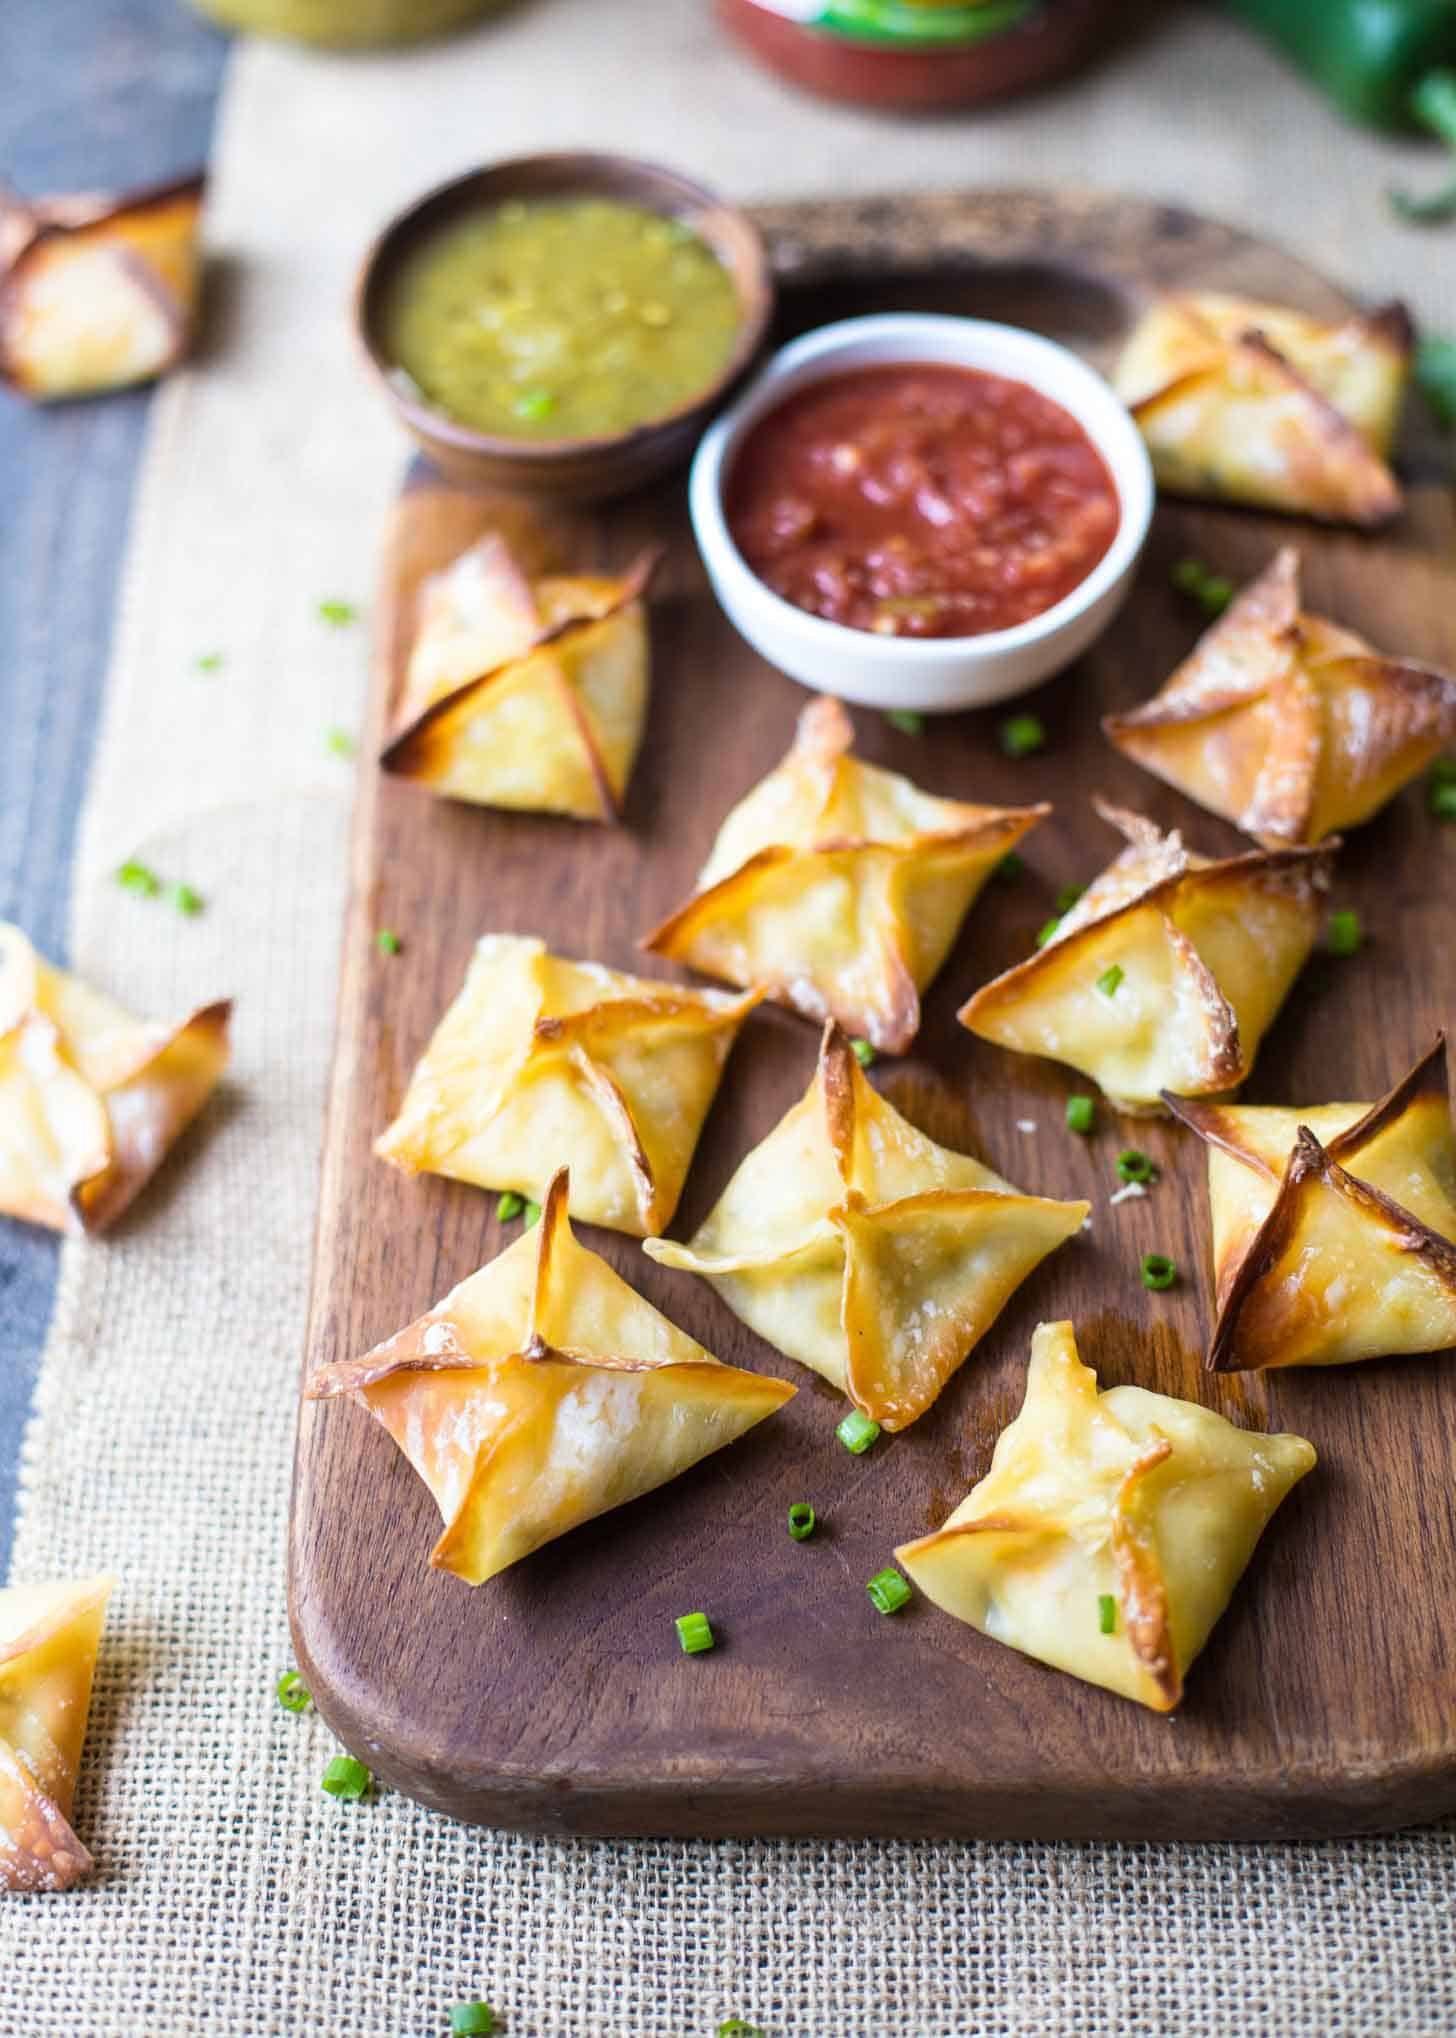 Baked Cheesy Chicken Wontons on a wooden tray with red and green salsa